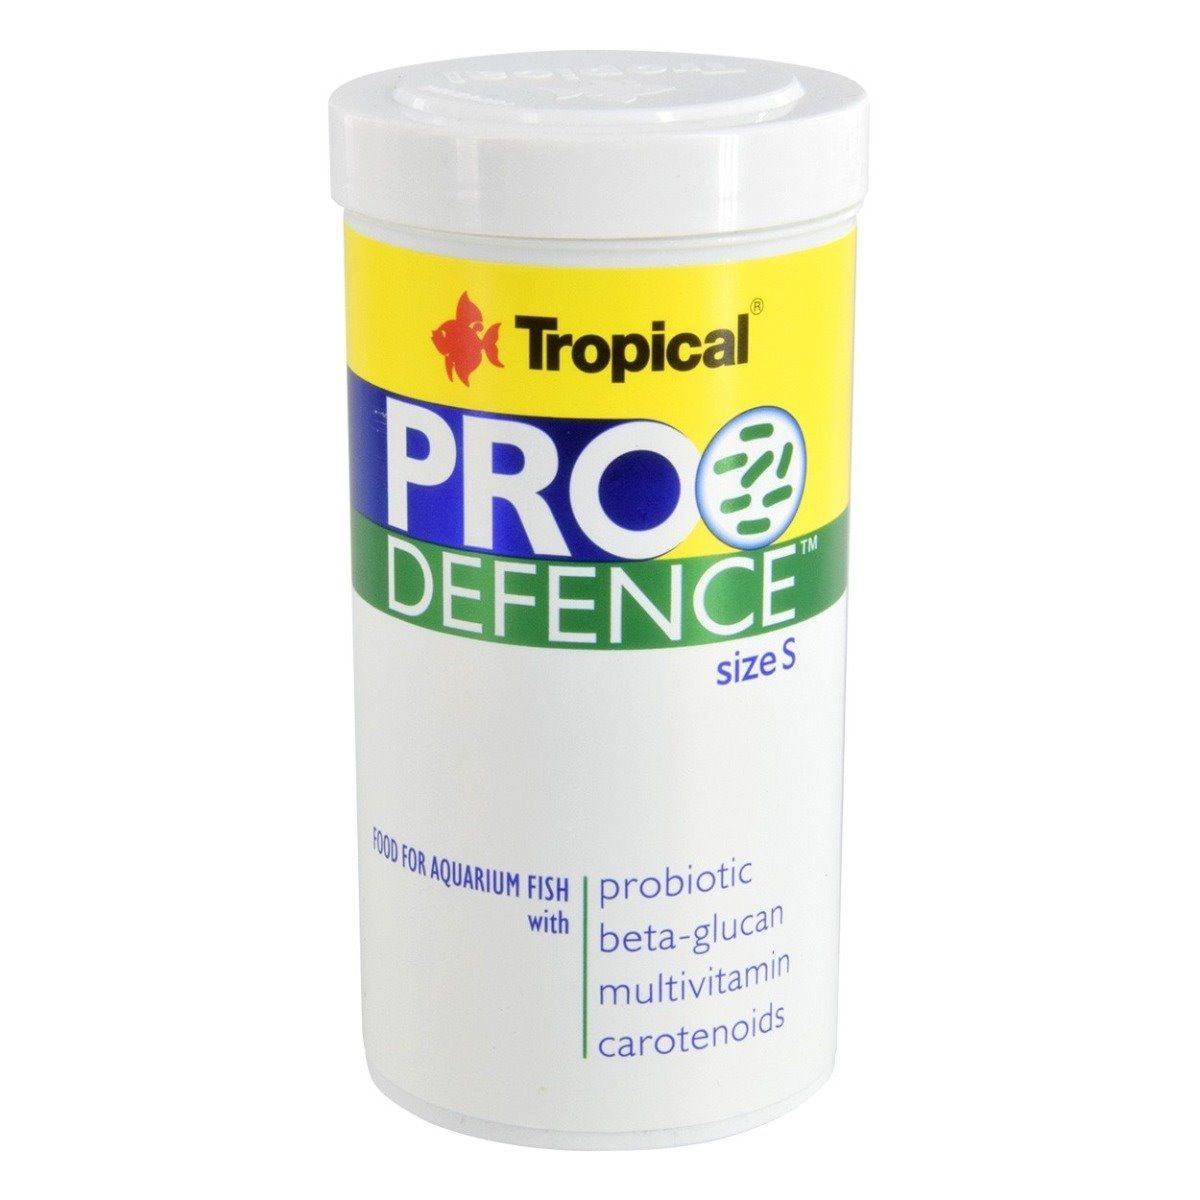 Tropical Pro Defence Size S 52g